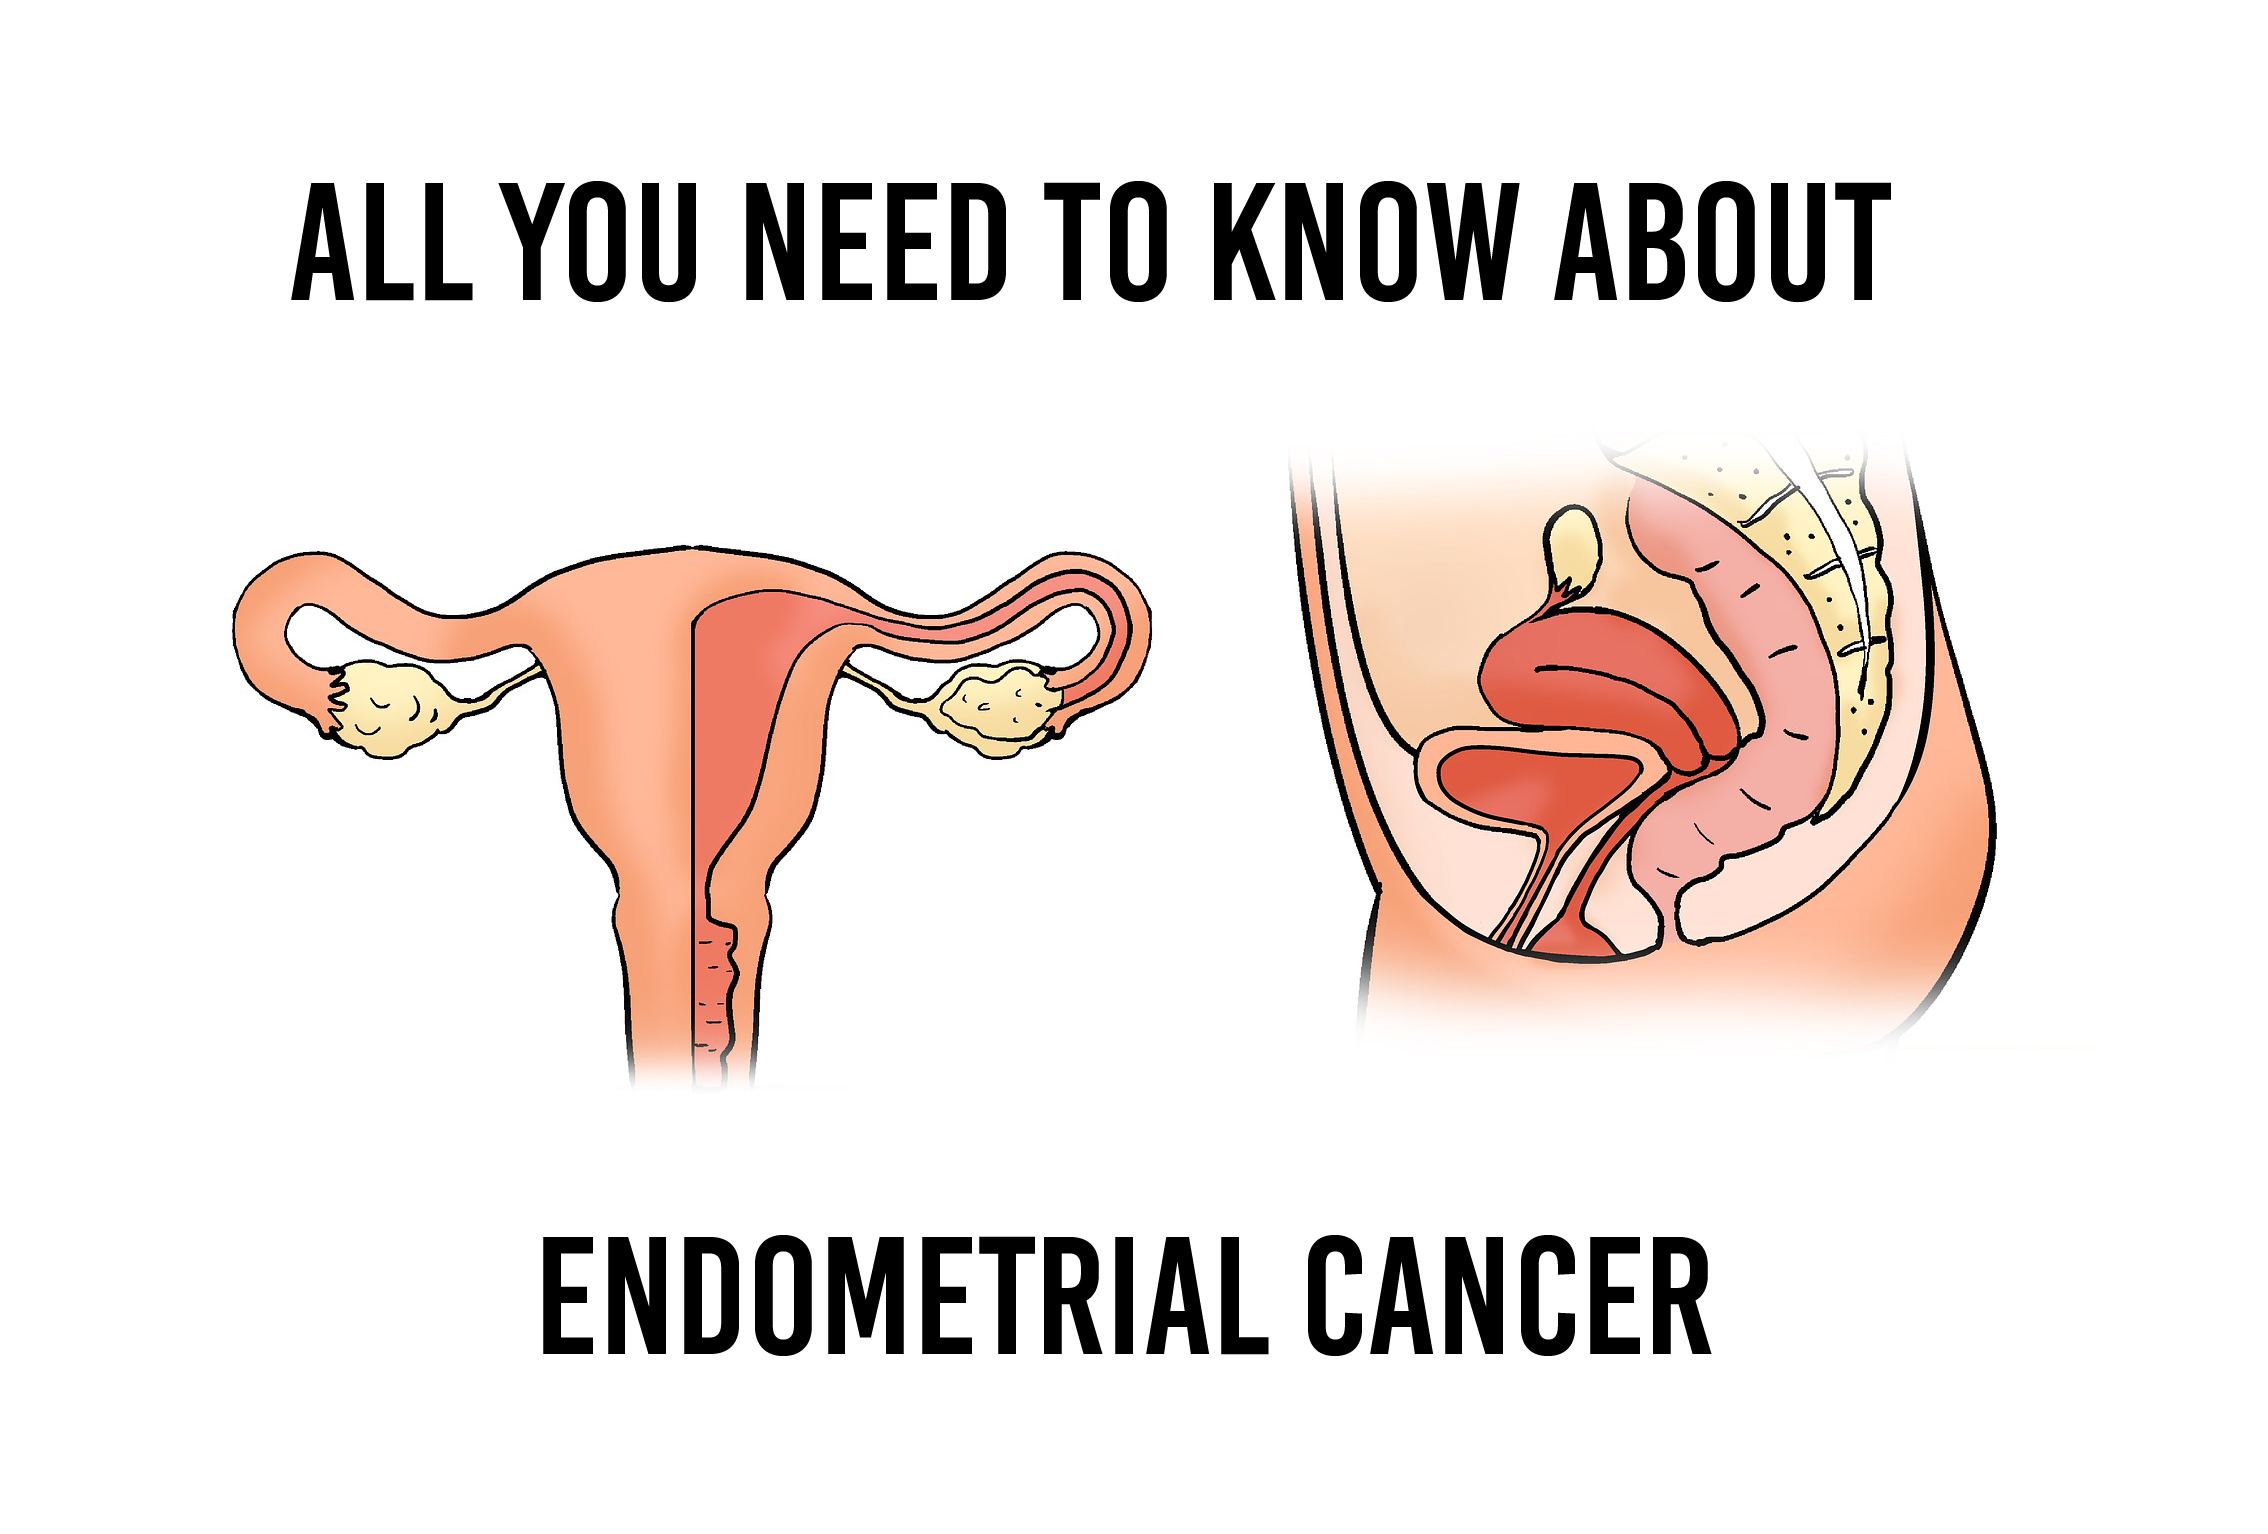 uterine cancer Endometrial cancer is a cancer that arises from the endometrium it is the result of  the abnormal growth of cells that have the.